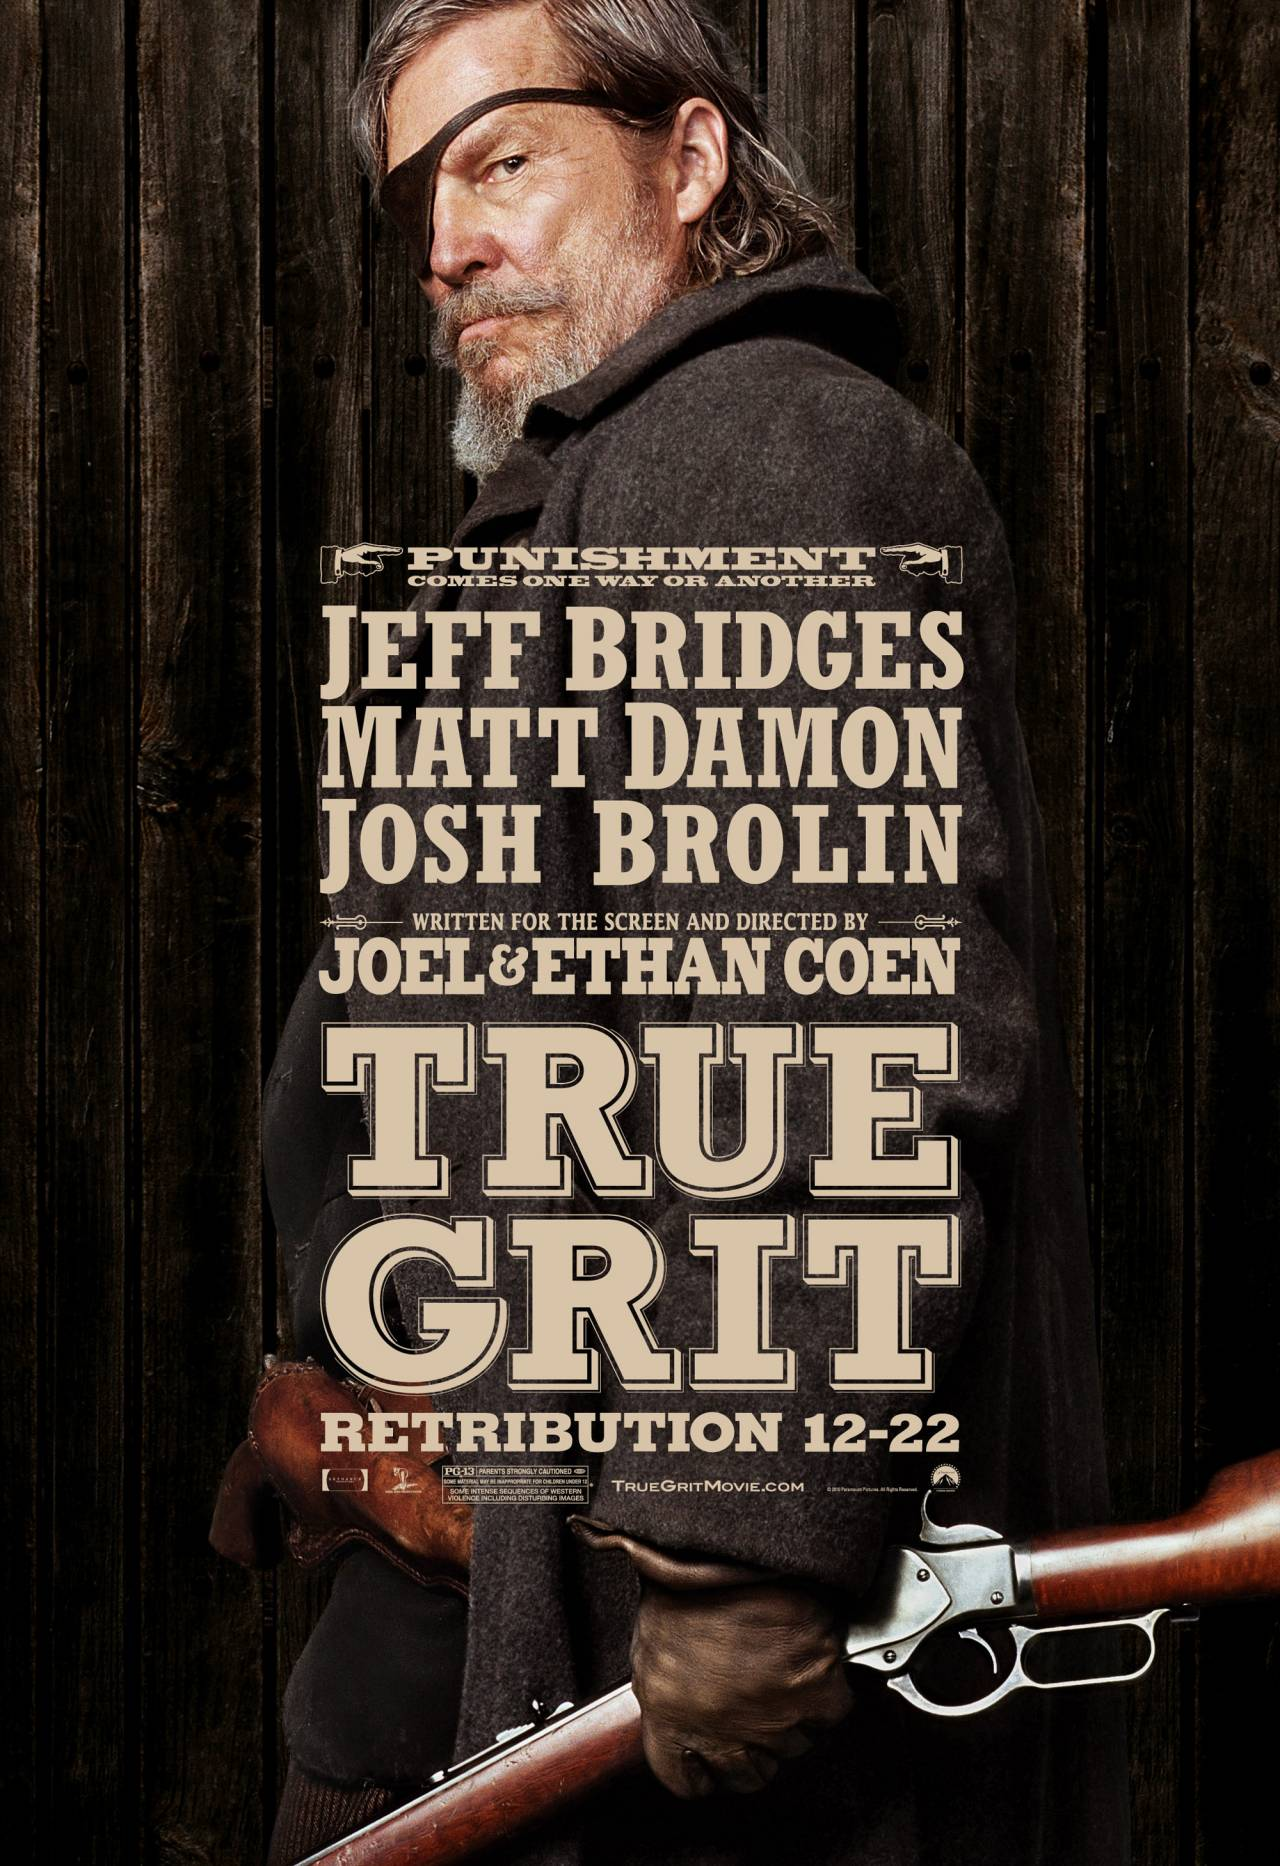 True Grit shatters funny bone, not much else | The Filmsmith